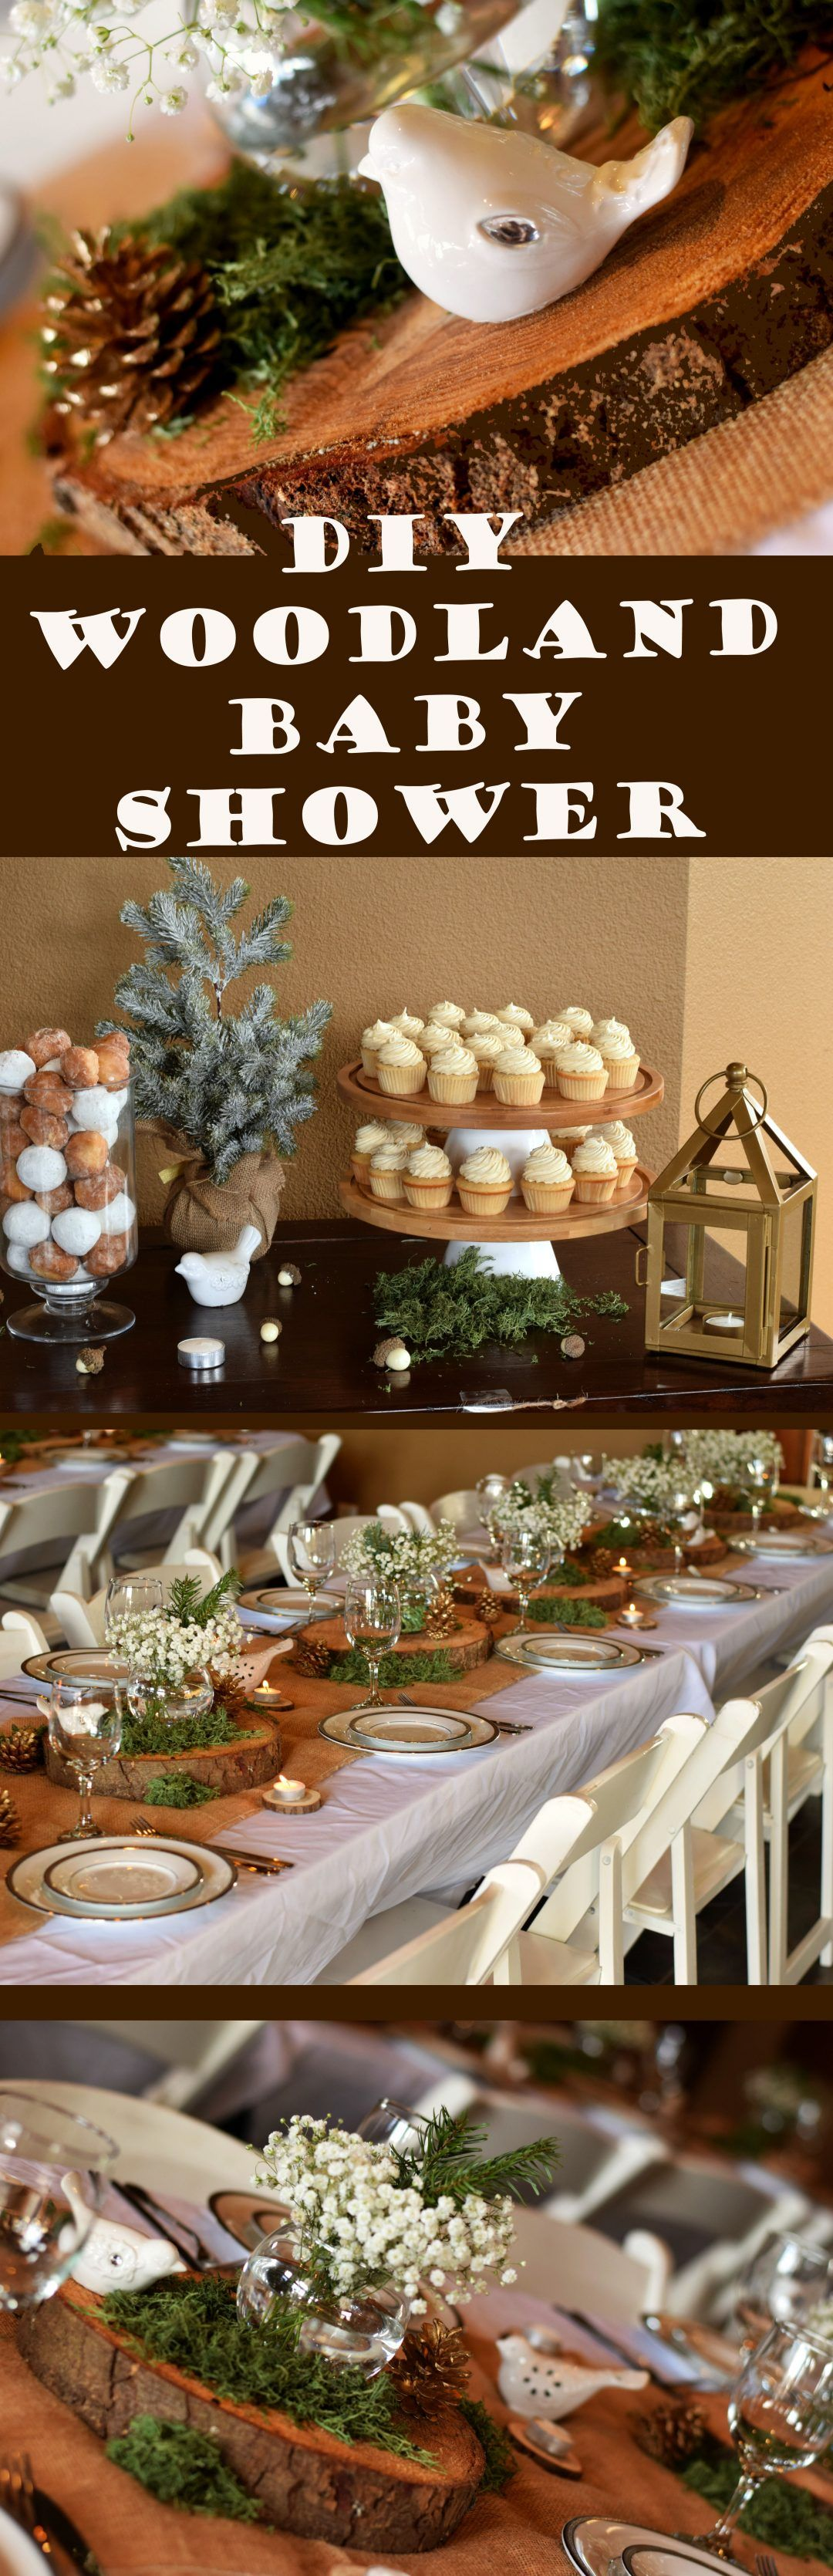 How To Throw An Amazing DIY Woodland Baby Shower